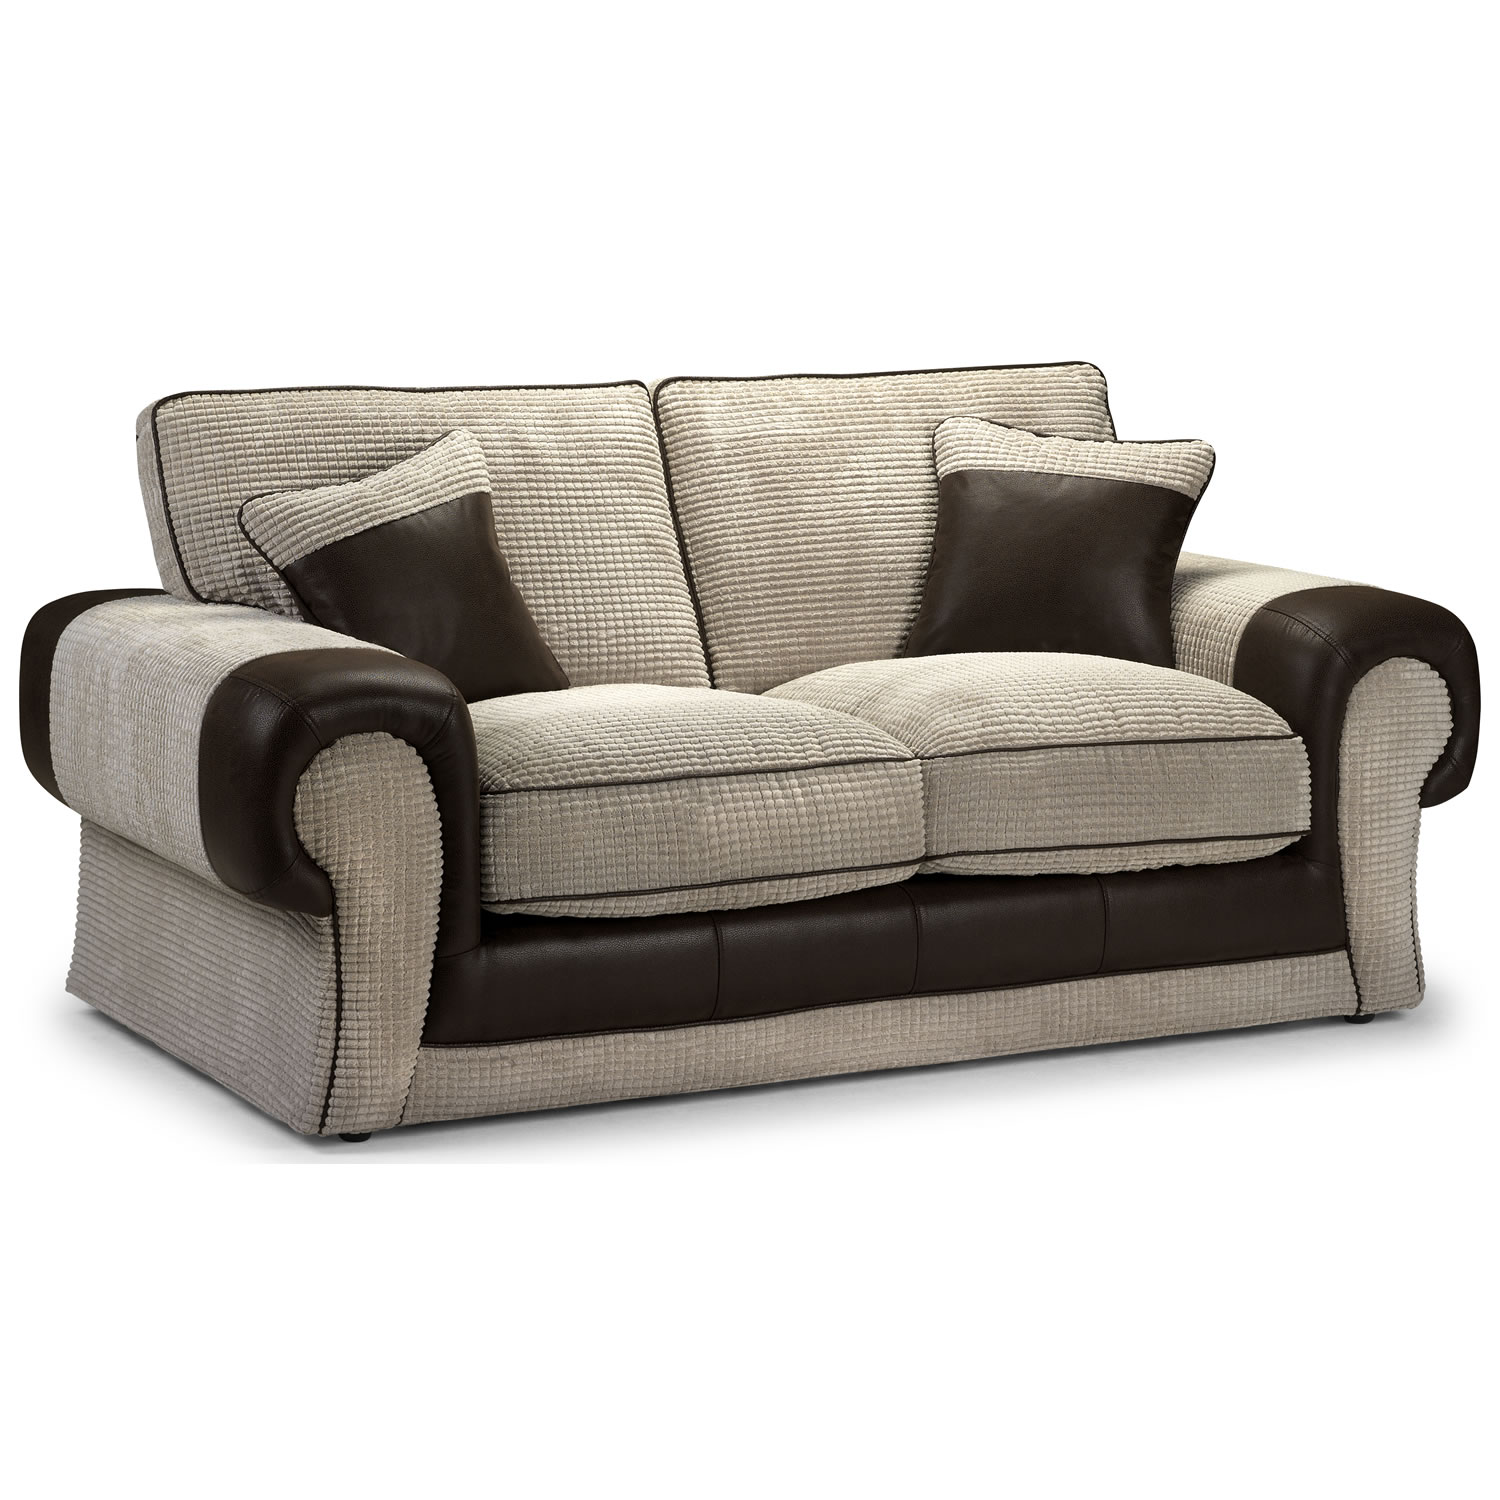 Two-seater sofa a space-saving piece of furniture to add charm and functionality